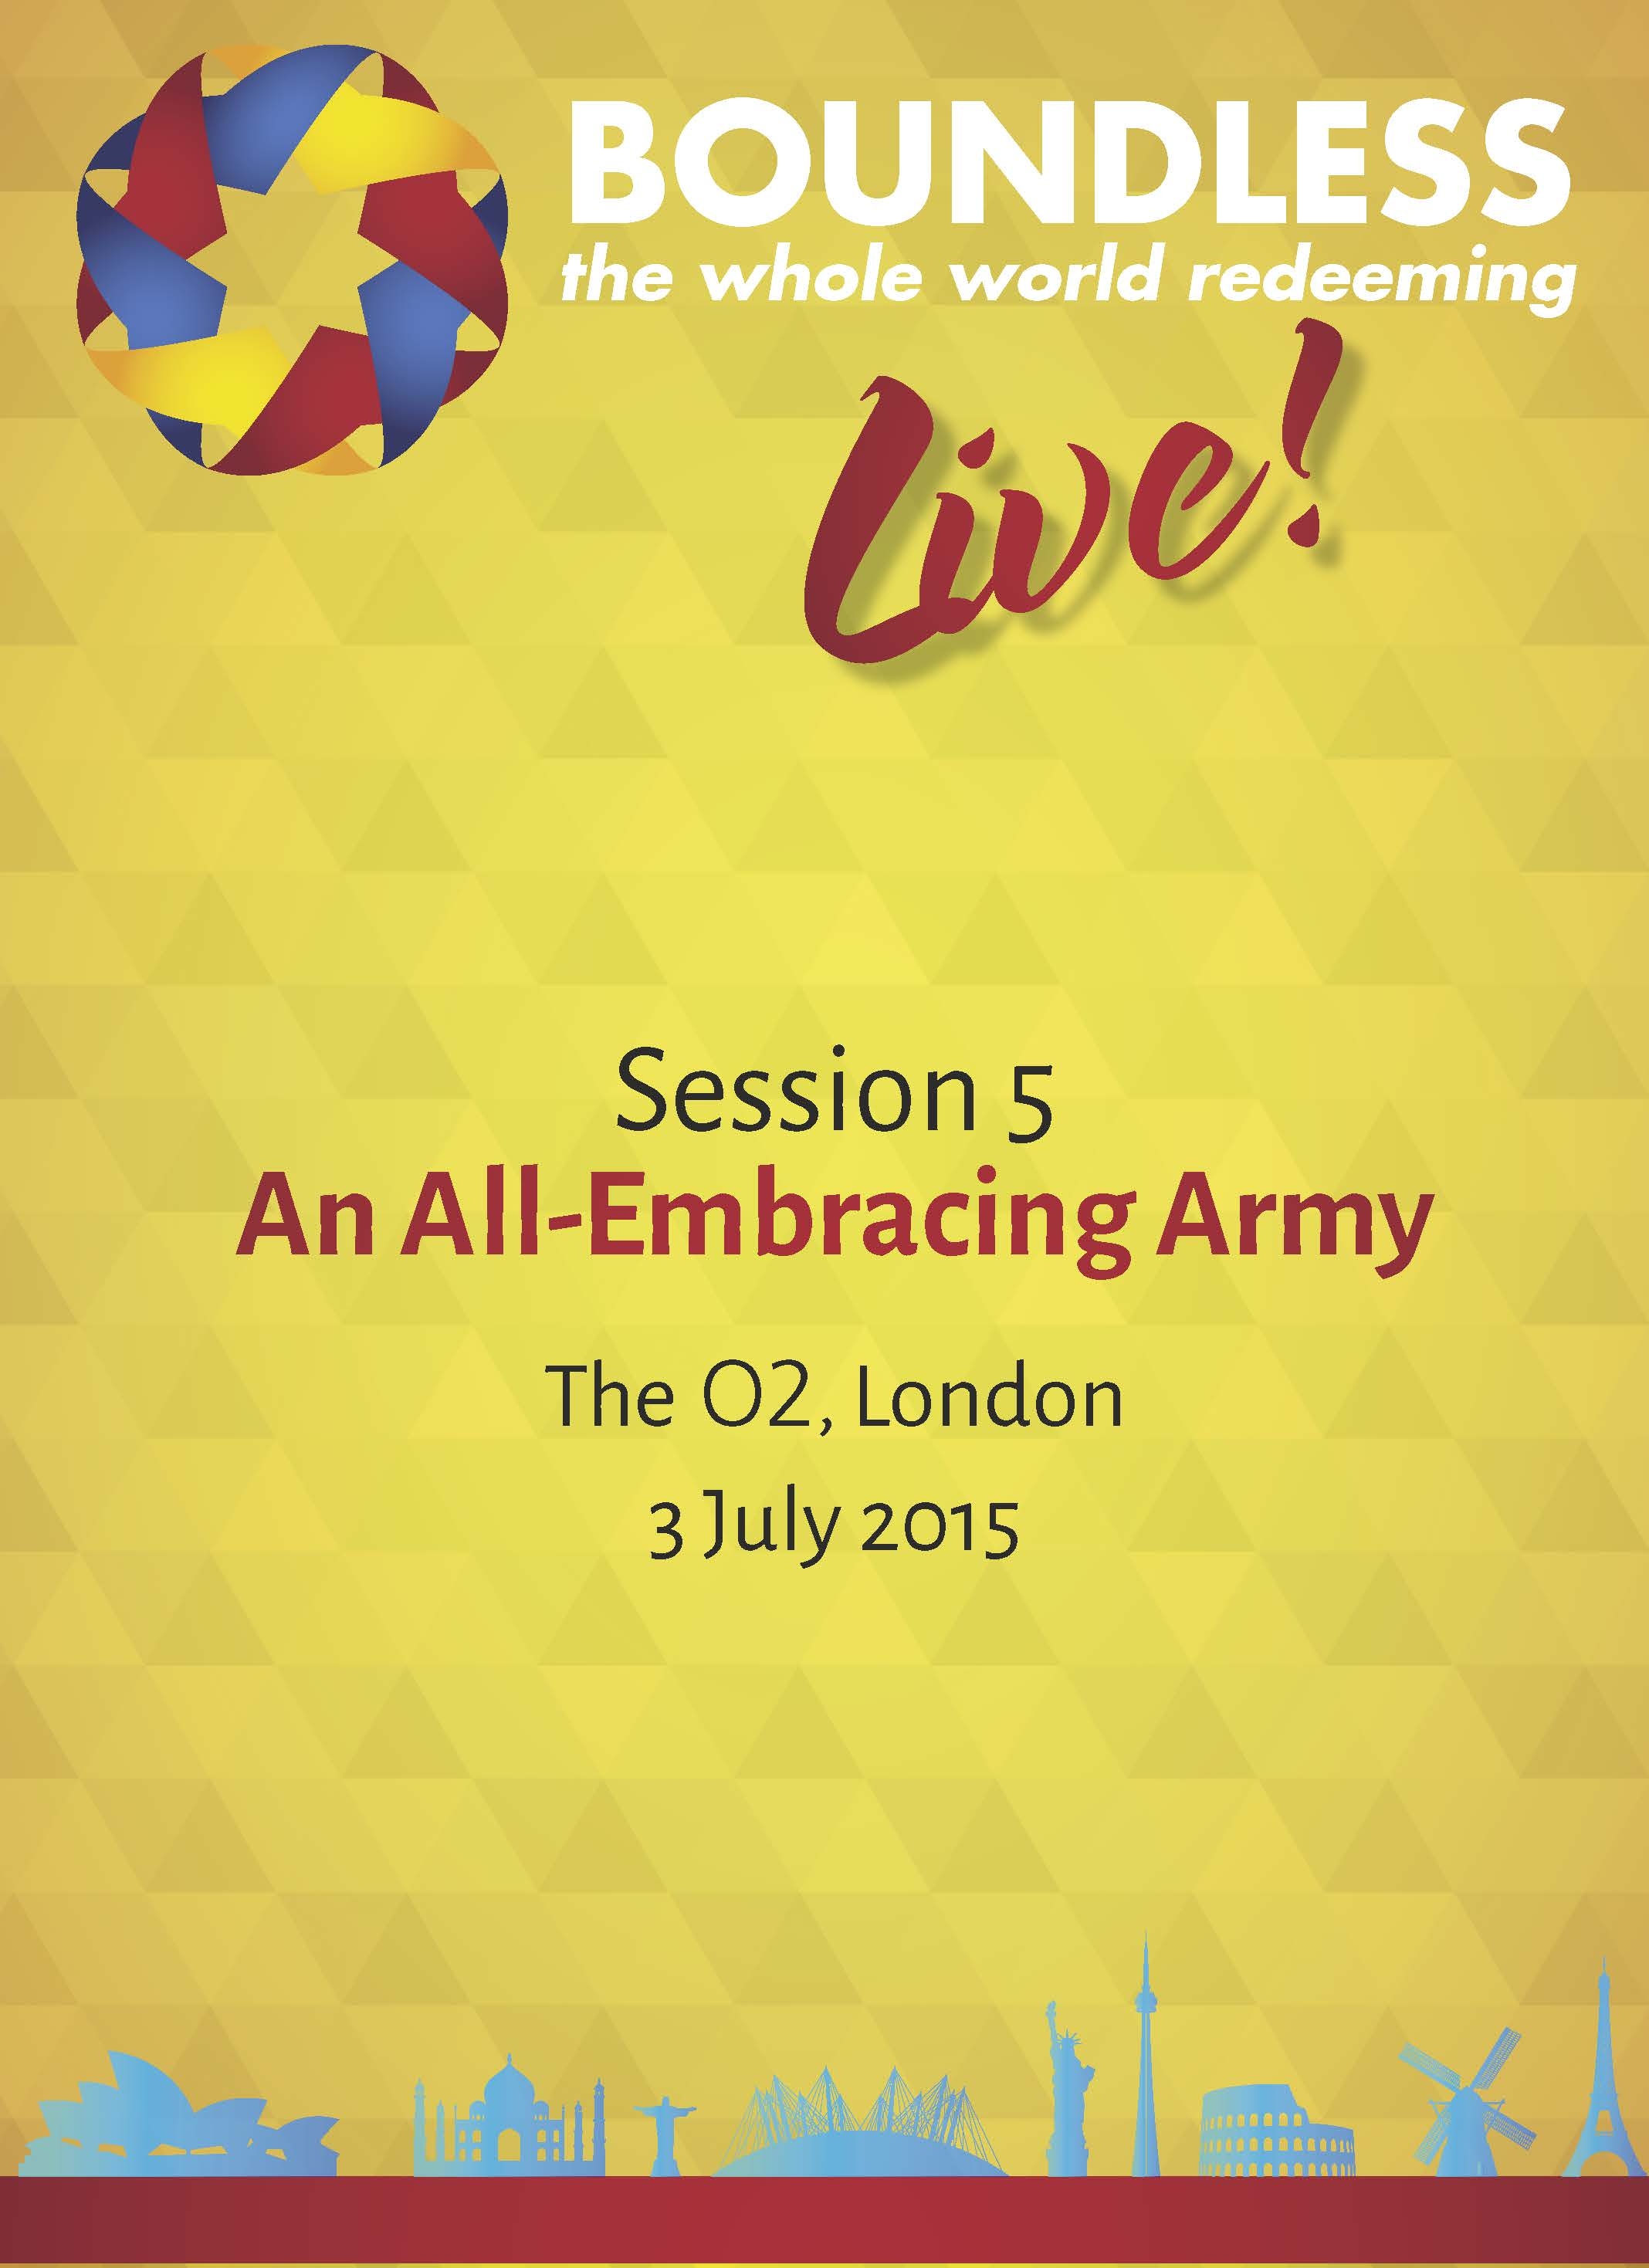 Boundless Live! Session 5 - An All-Embracing Army